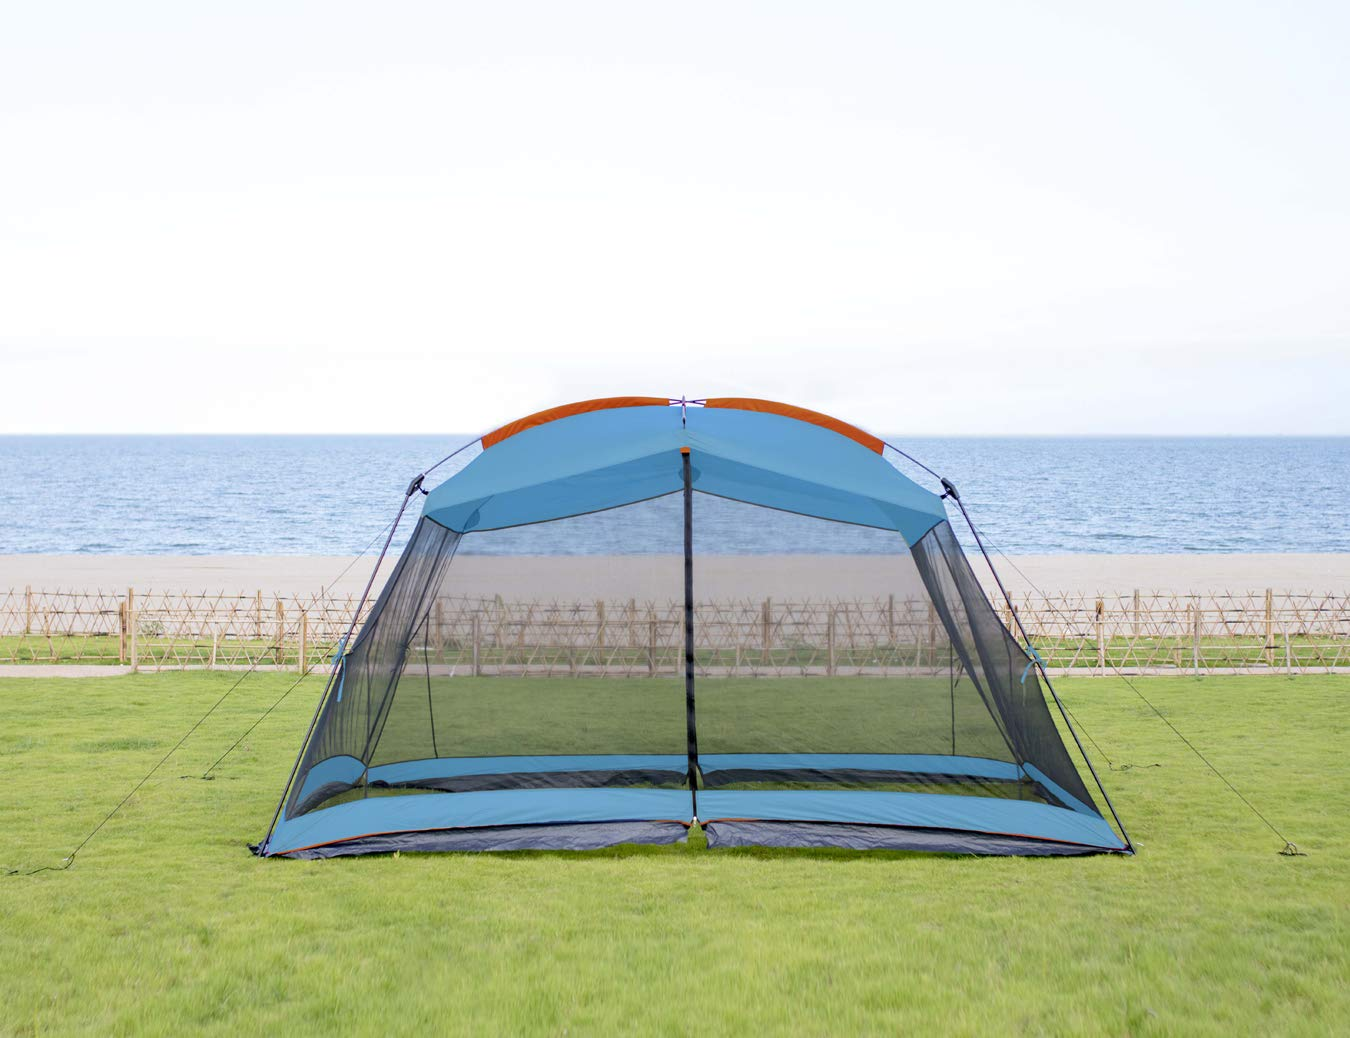 RORAIMA Bugs Proof Roomy Screen House 13'x9'x6.9', Instant Canopy Shelter Screen Tent,Easy Installation Within Mins and Good for Family Picnic Suitable for 5-8 People Blue (Blue) by RORAIMA